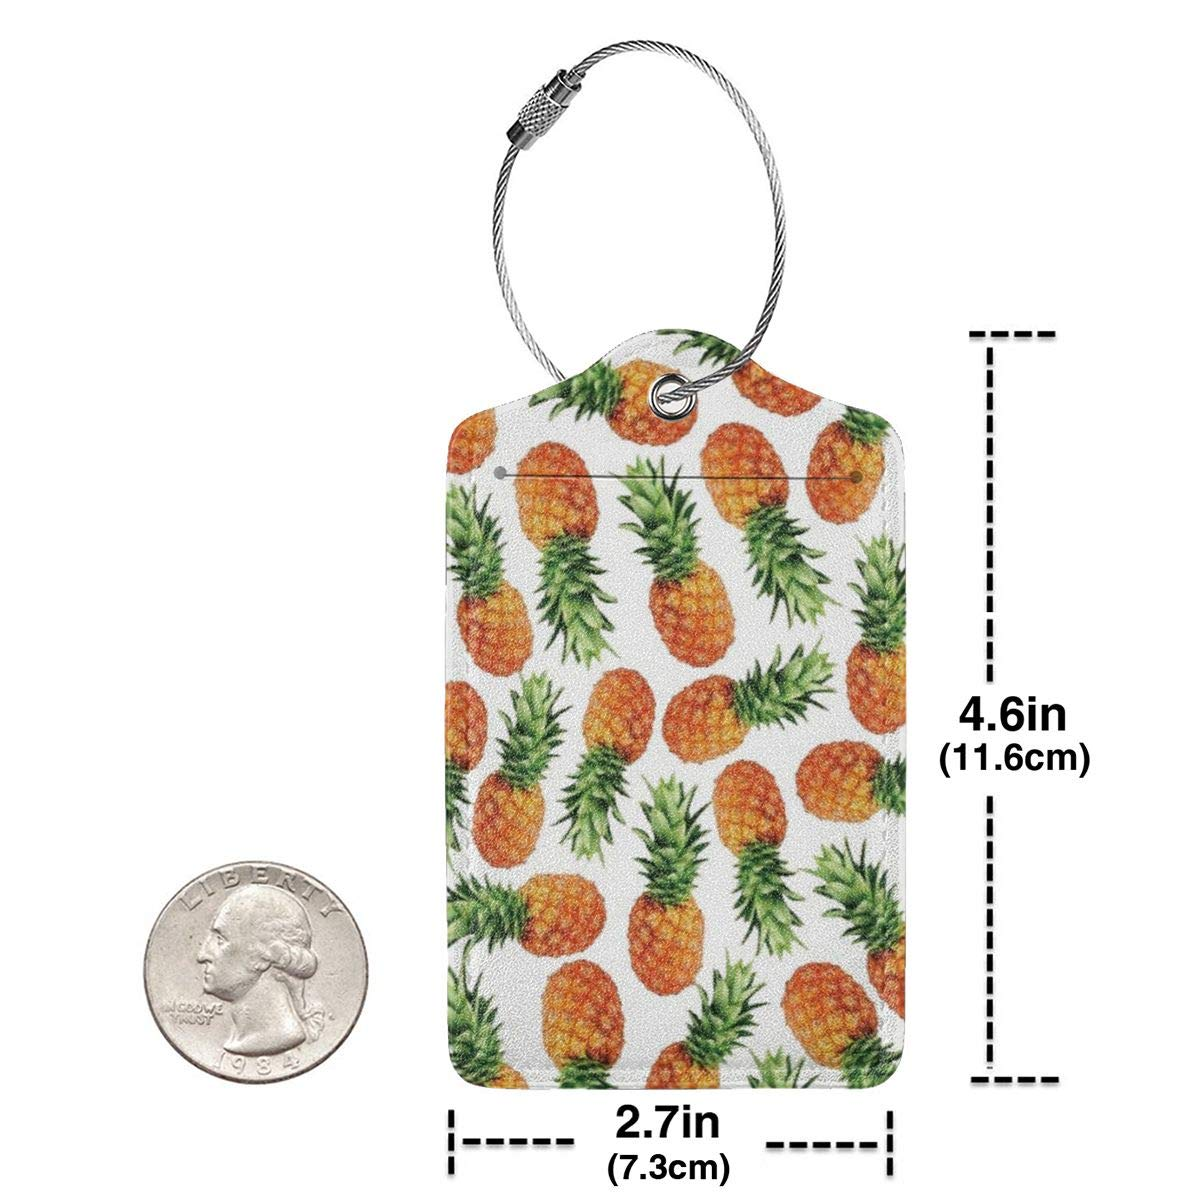 Hawaii Tropical Pineapple 2.7 x 4.6 Blank Tag Leather Luggage Tags Full Privacy Cover and Stainless Steel Loop 1 2 4 Pcs Set Key Tags for Instrument Baggage Bag Gift